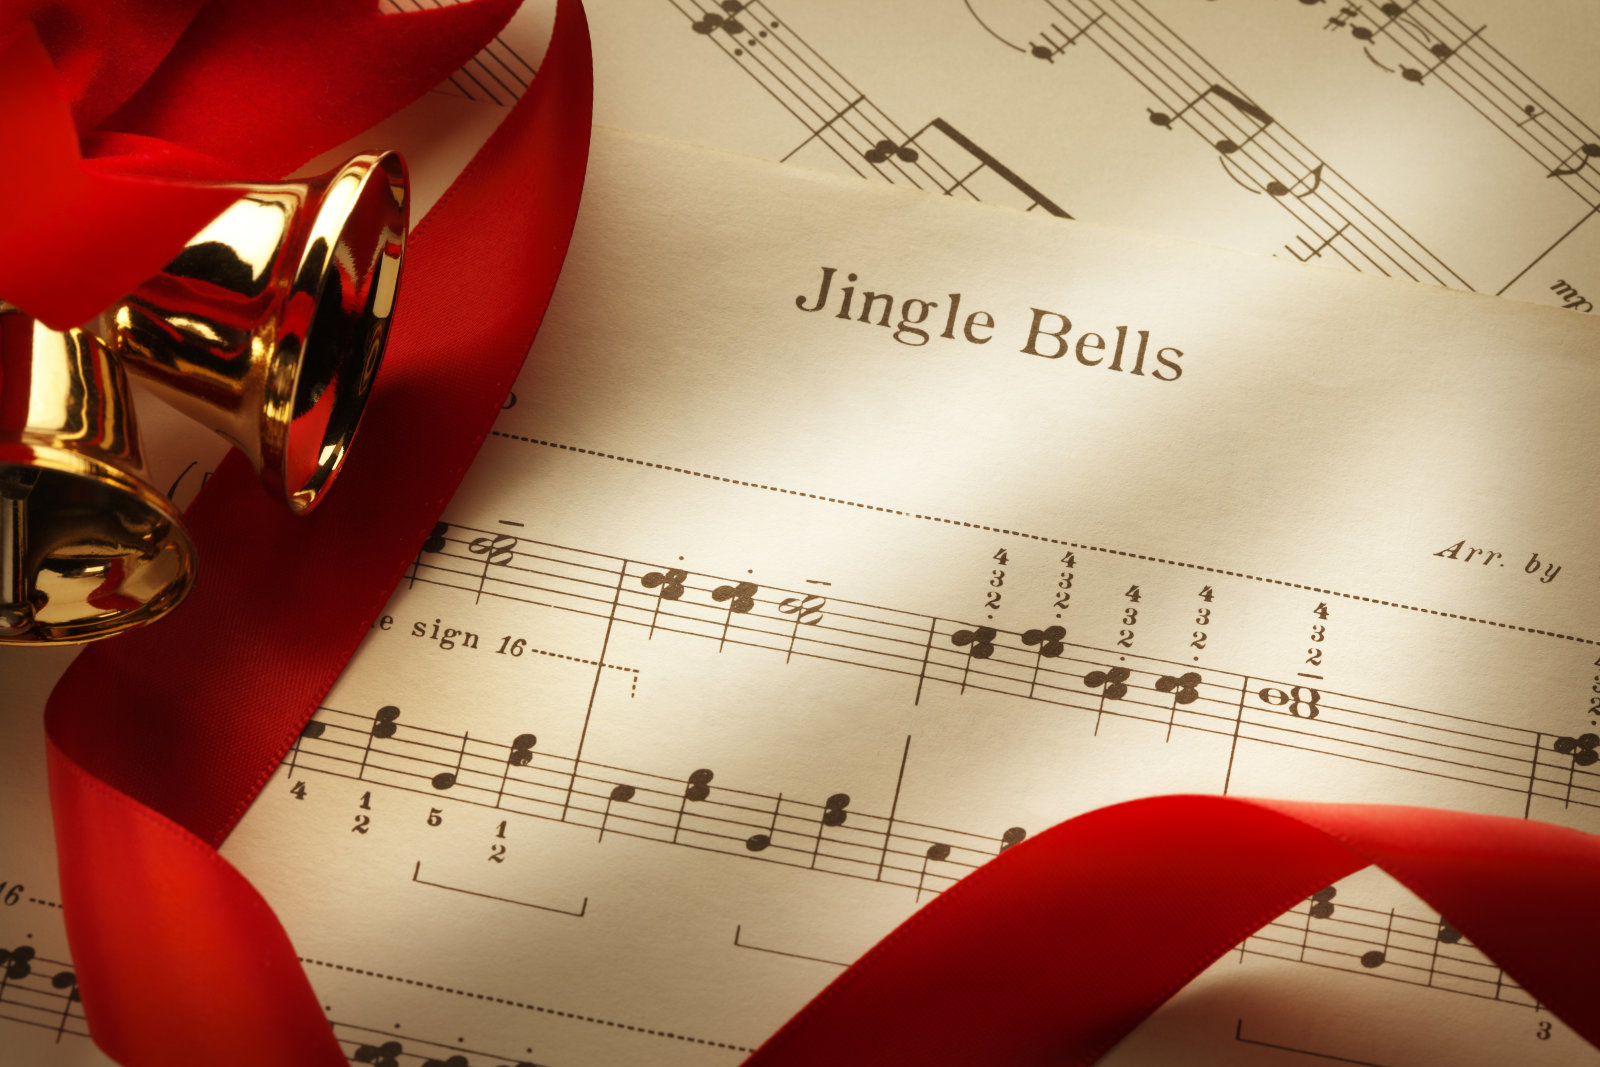 Several Christmas bells and red ribbon on the sheet music from the Christmas classic, Jingle Bells.